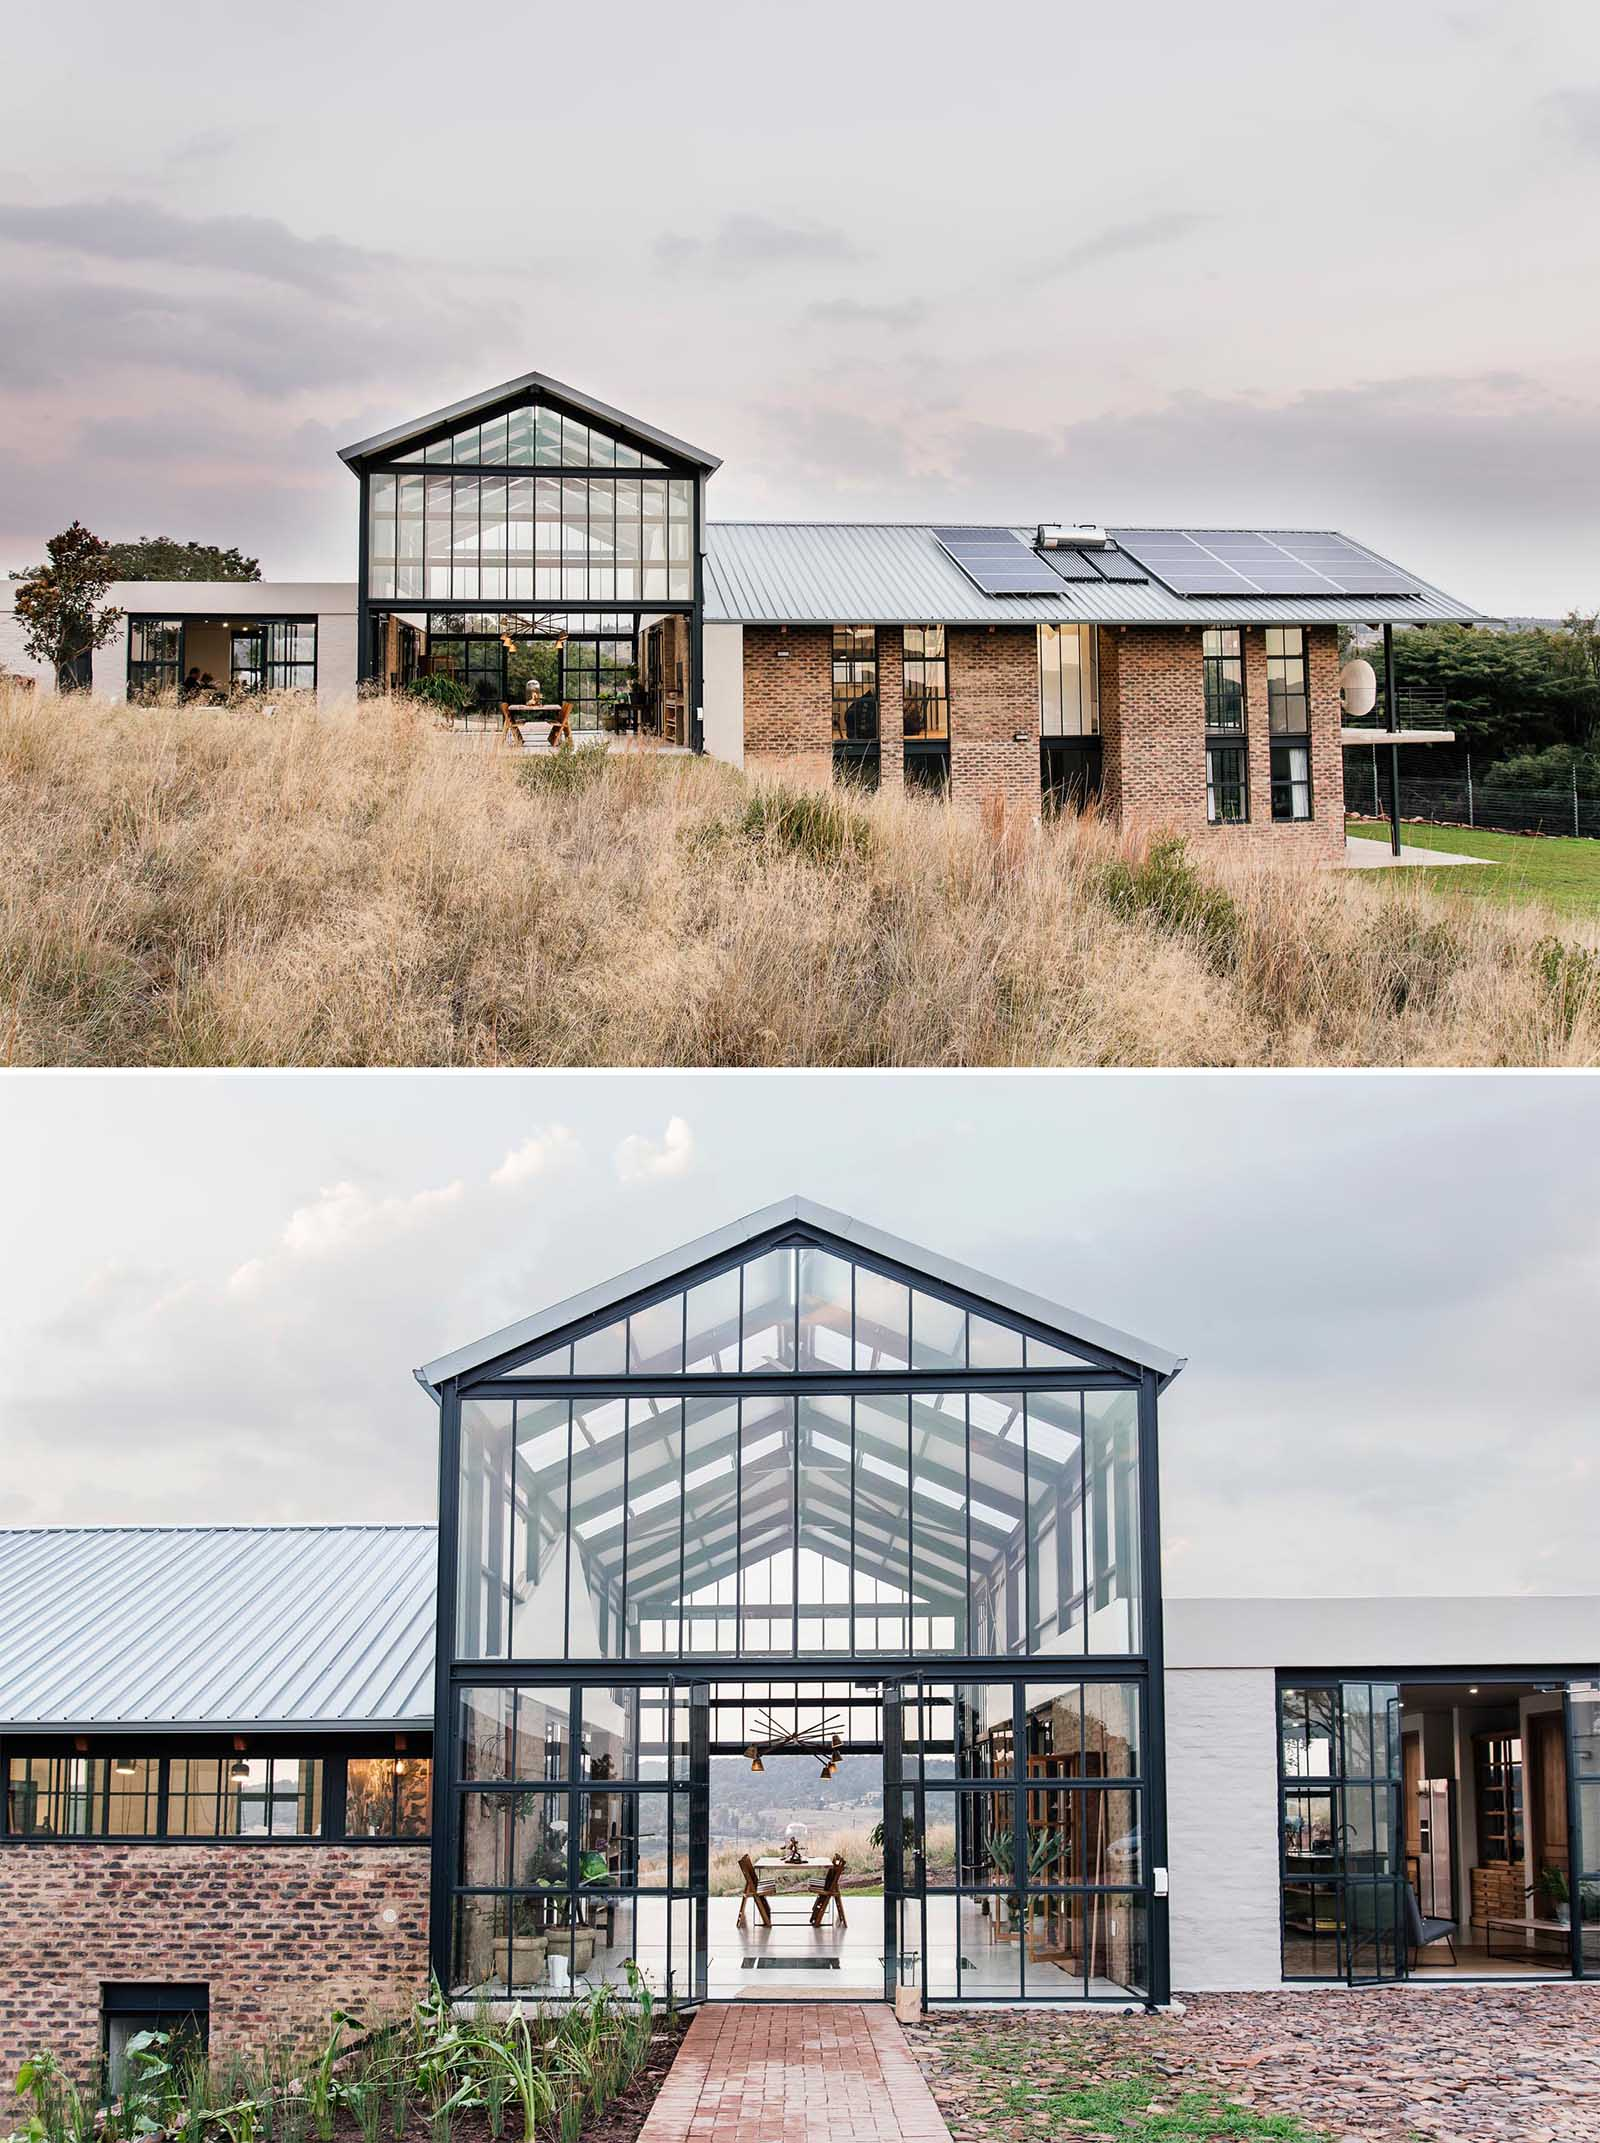 The double-height conservatory can be opened, providing uninterrupted views of the landscape, while a glass section flooring gives a glimpse of the lower level below.